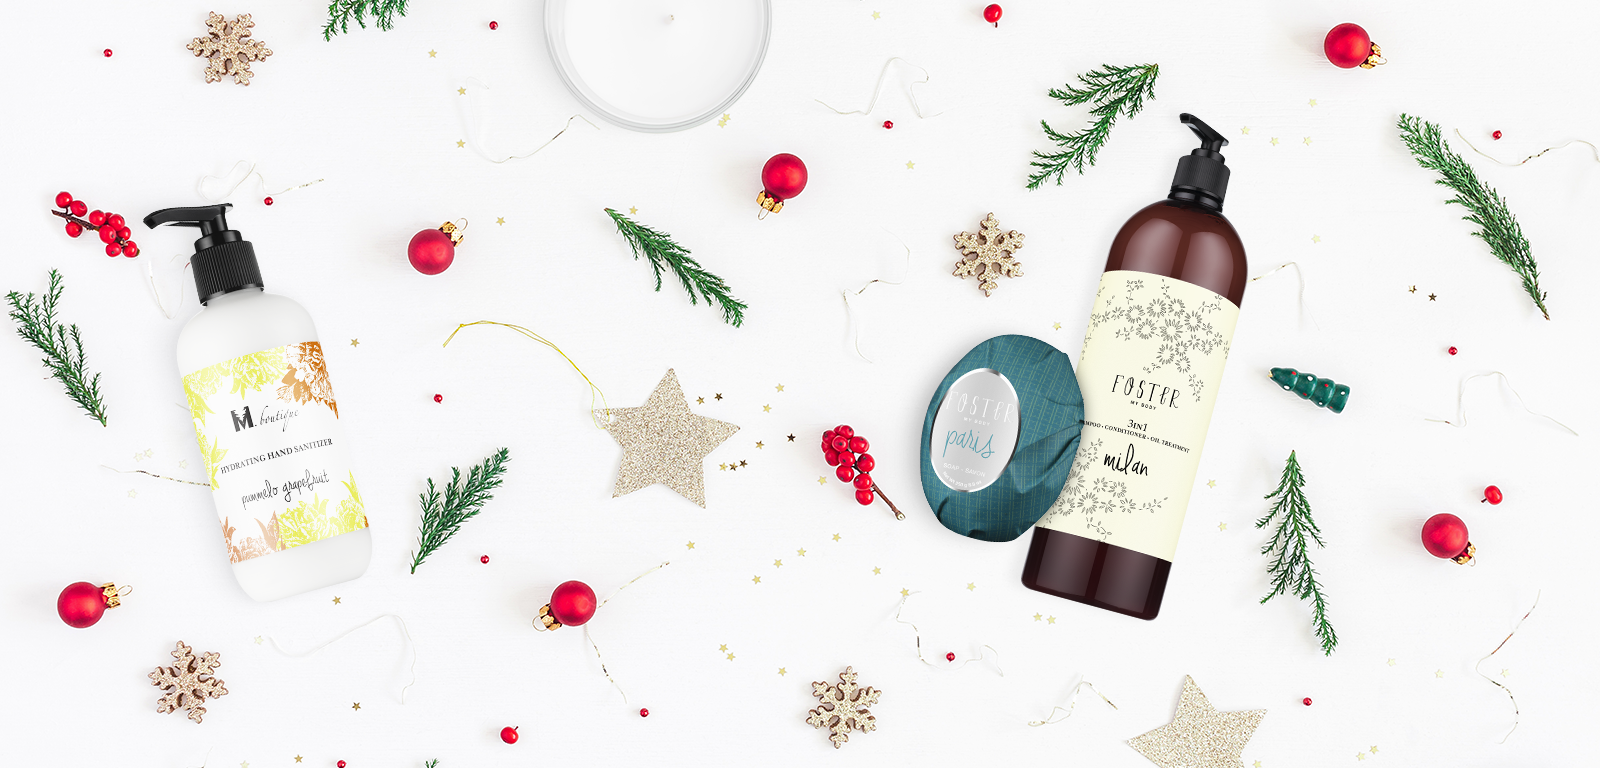 All-natural gift ideas